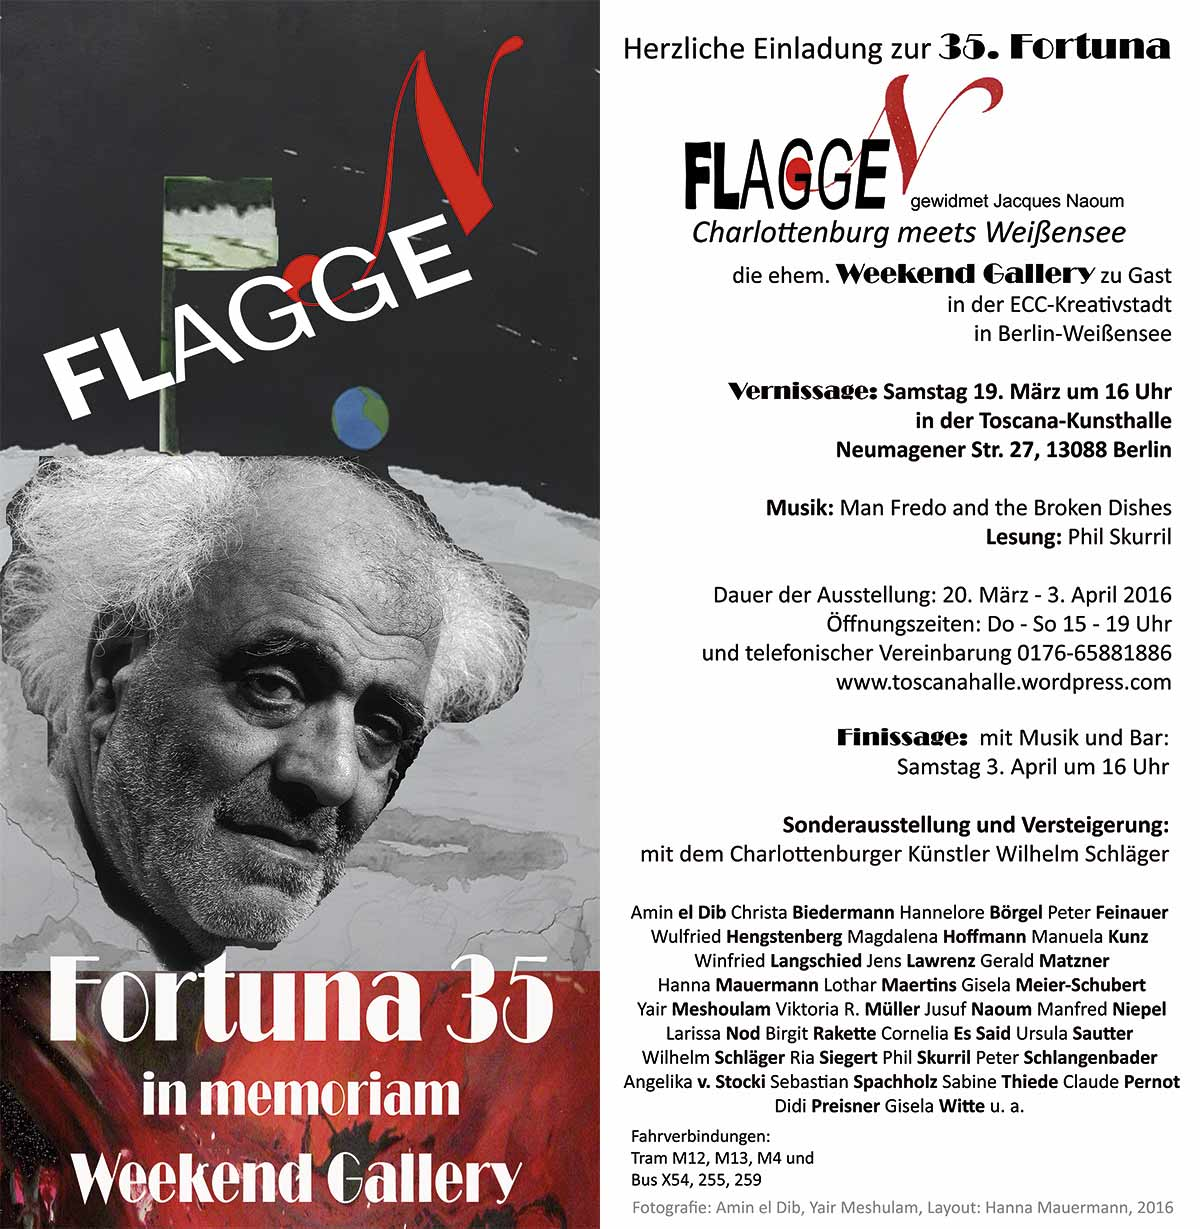 Ausstellung: FLAGGEN – in memoriam Weekend Gallery